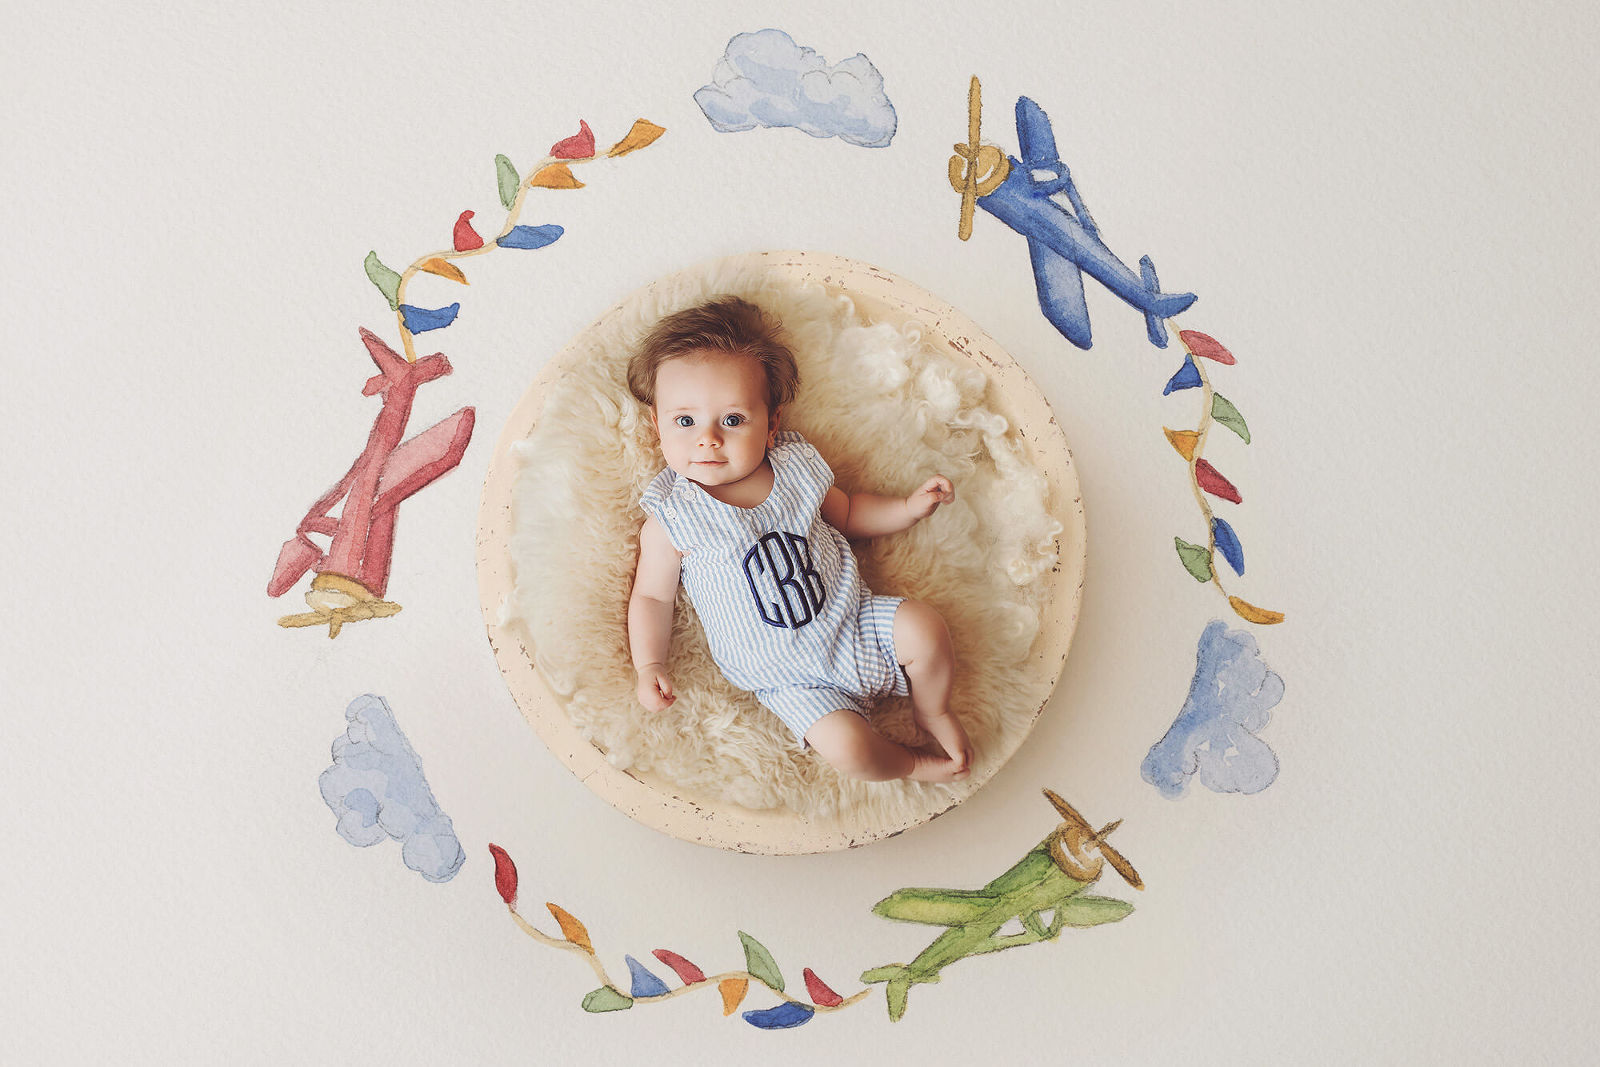 A three-month old baby boy laying in a wooden bowl surrounded by a backdrop of hand-drawn airplanes